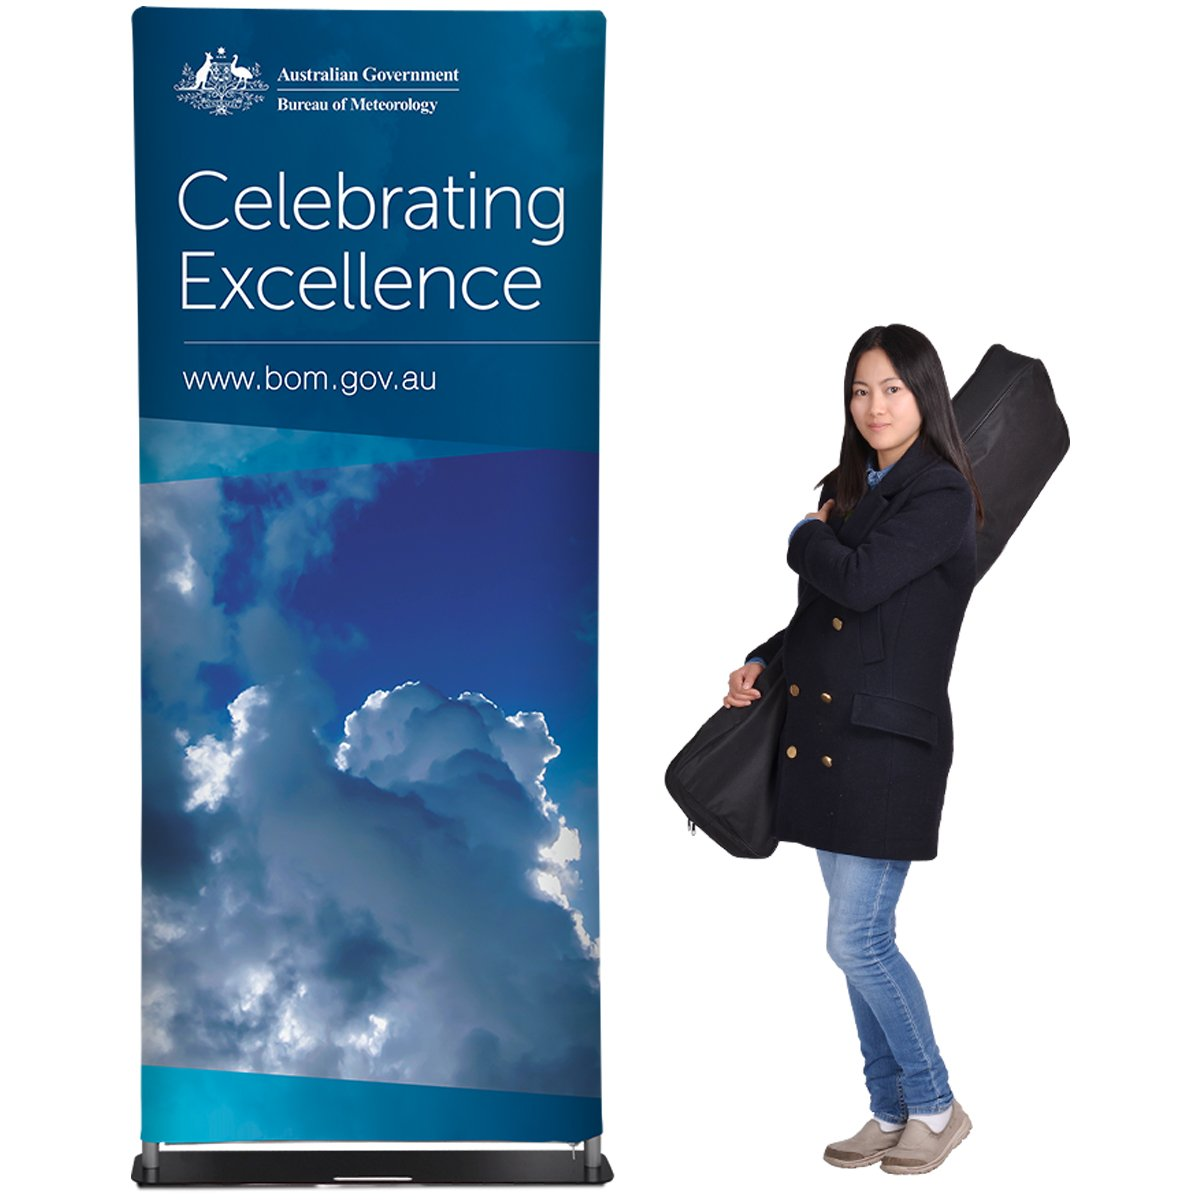 These stand banners are portable and include a nylon carrying bag that holds all the components for transport to events or storage. https://t.co/tw1UDMfGVa https://t.co/jaVnxUhD4g